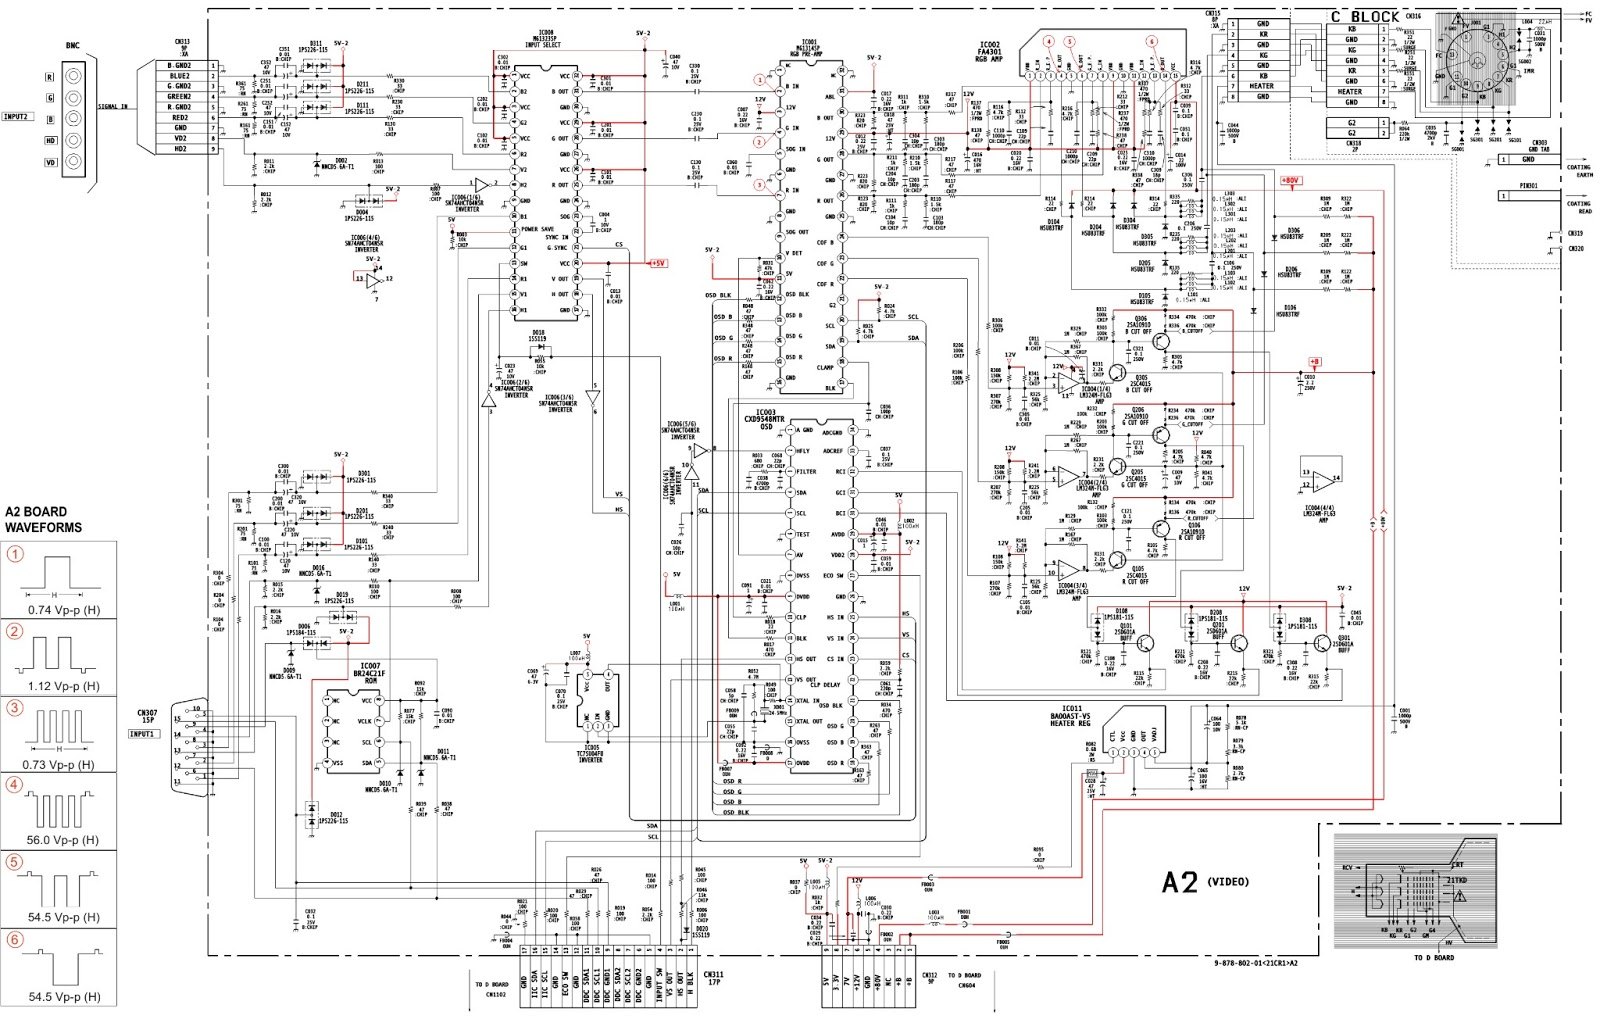 medium resolution of xbox 360 schematics diagram wiring diagram for you xbox one headset wiring diagram xbox controller wiring diagram